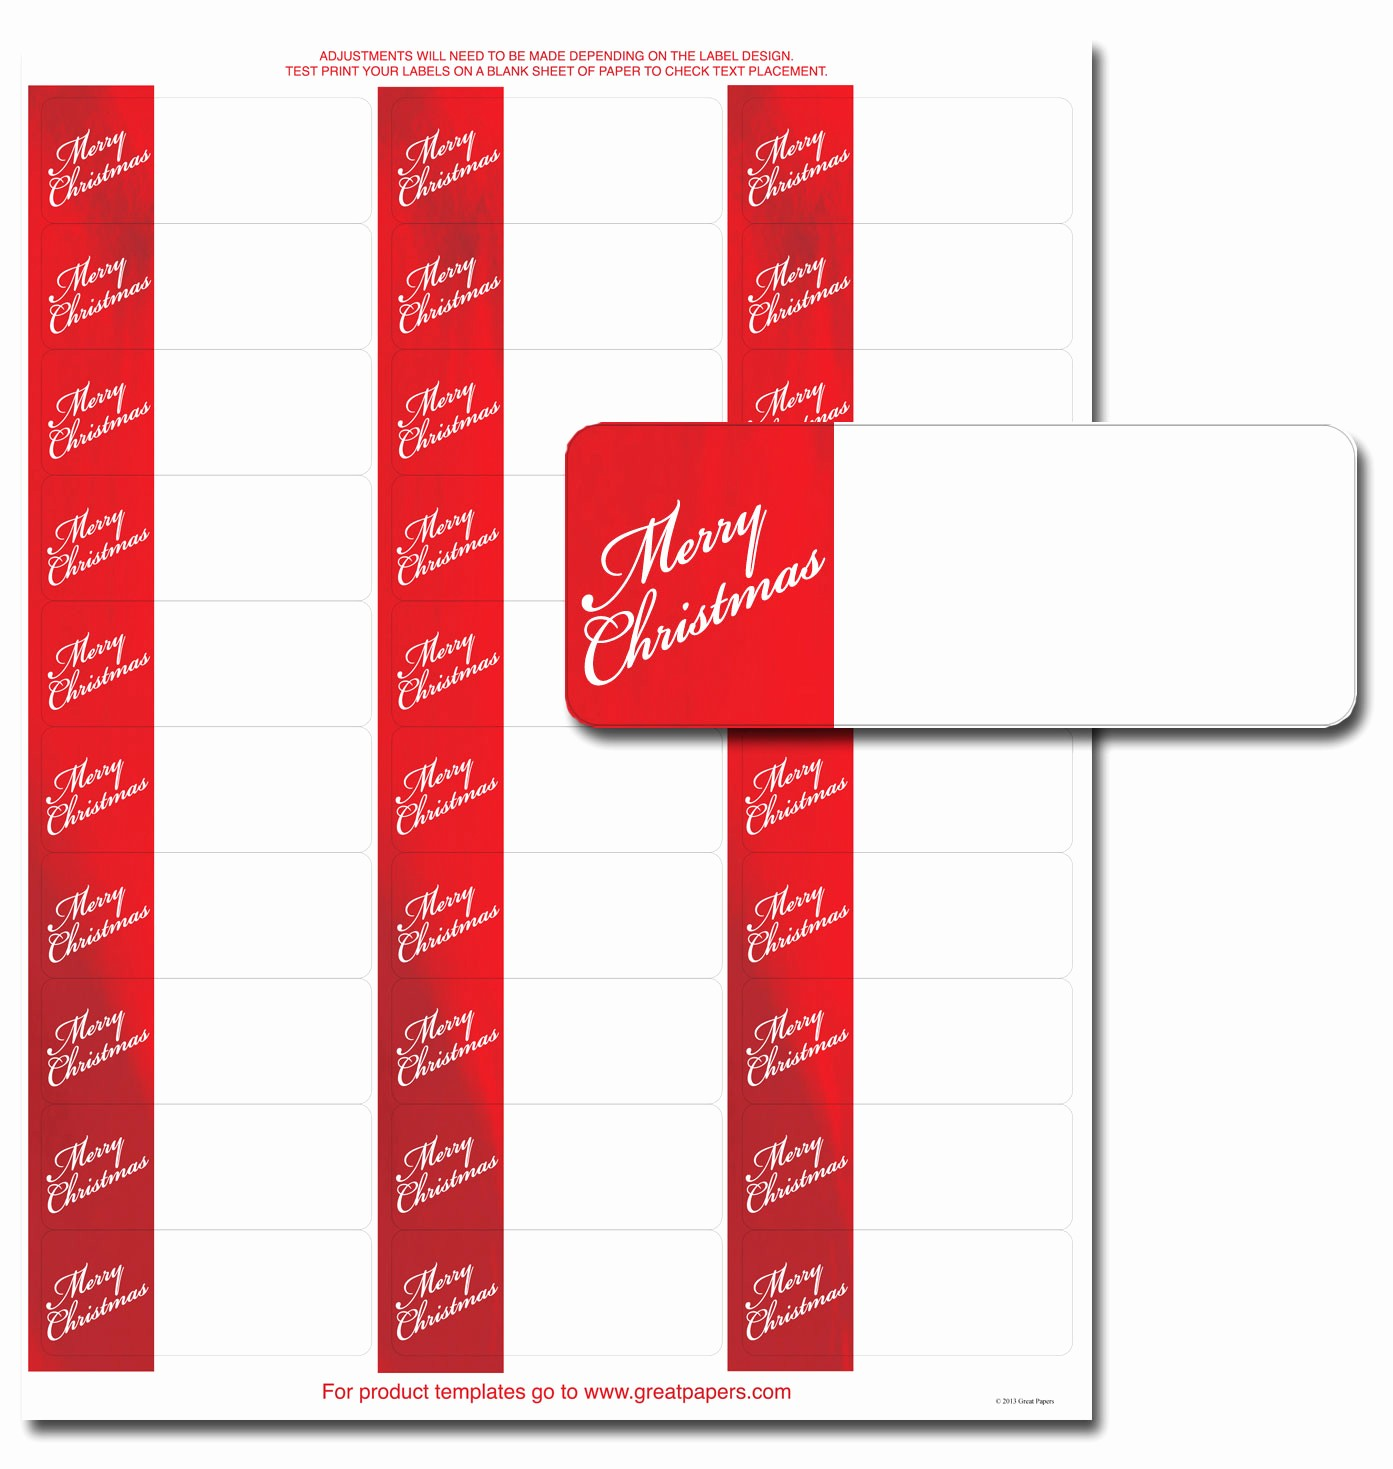 Avery Label 5163 Template Free Luxury Christmas Label Templates Avery 5163 – Christmas Fun Zone